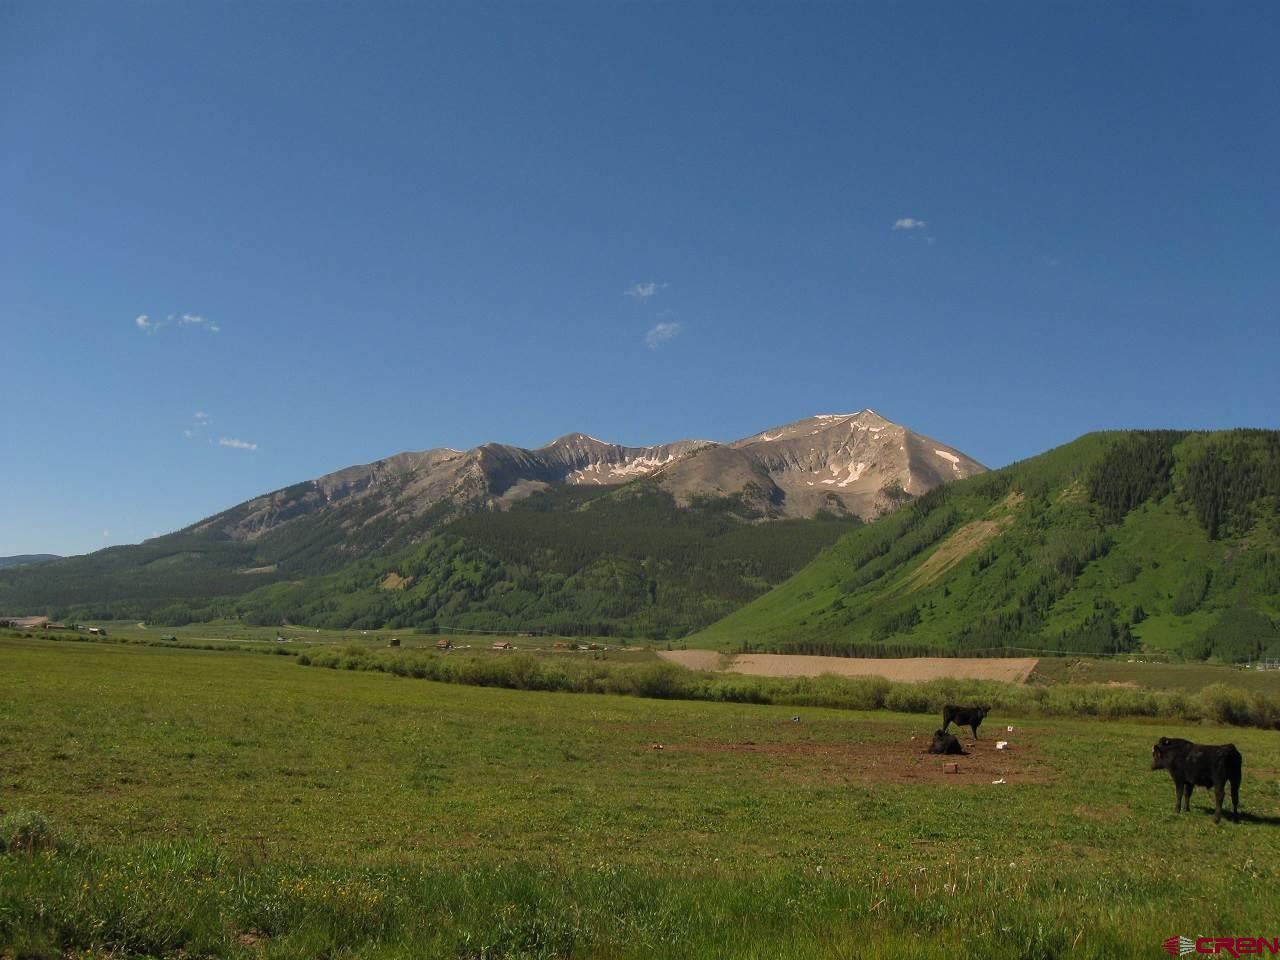 MLS# 757733 - 29 - 341 Mccormick Ranch Road, Crested Butte, CO 81224